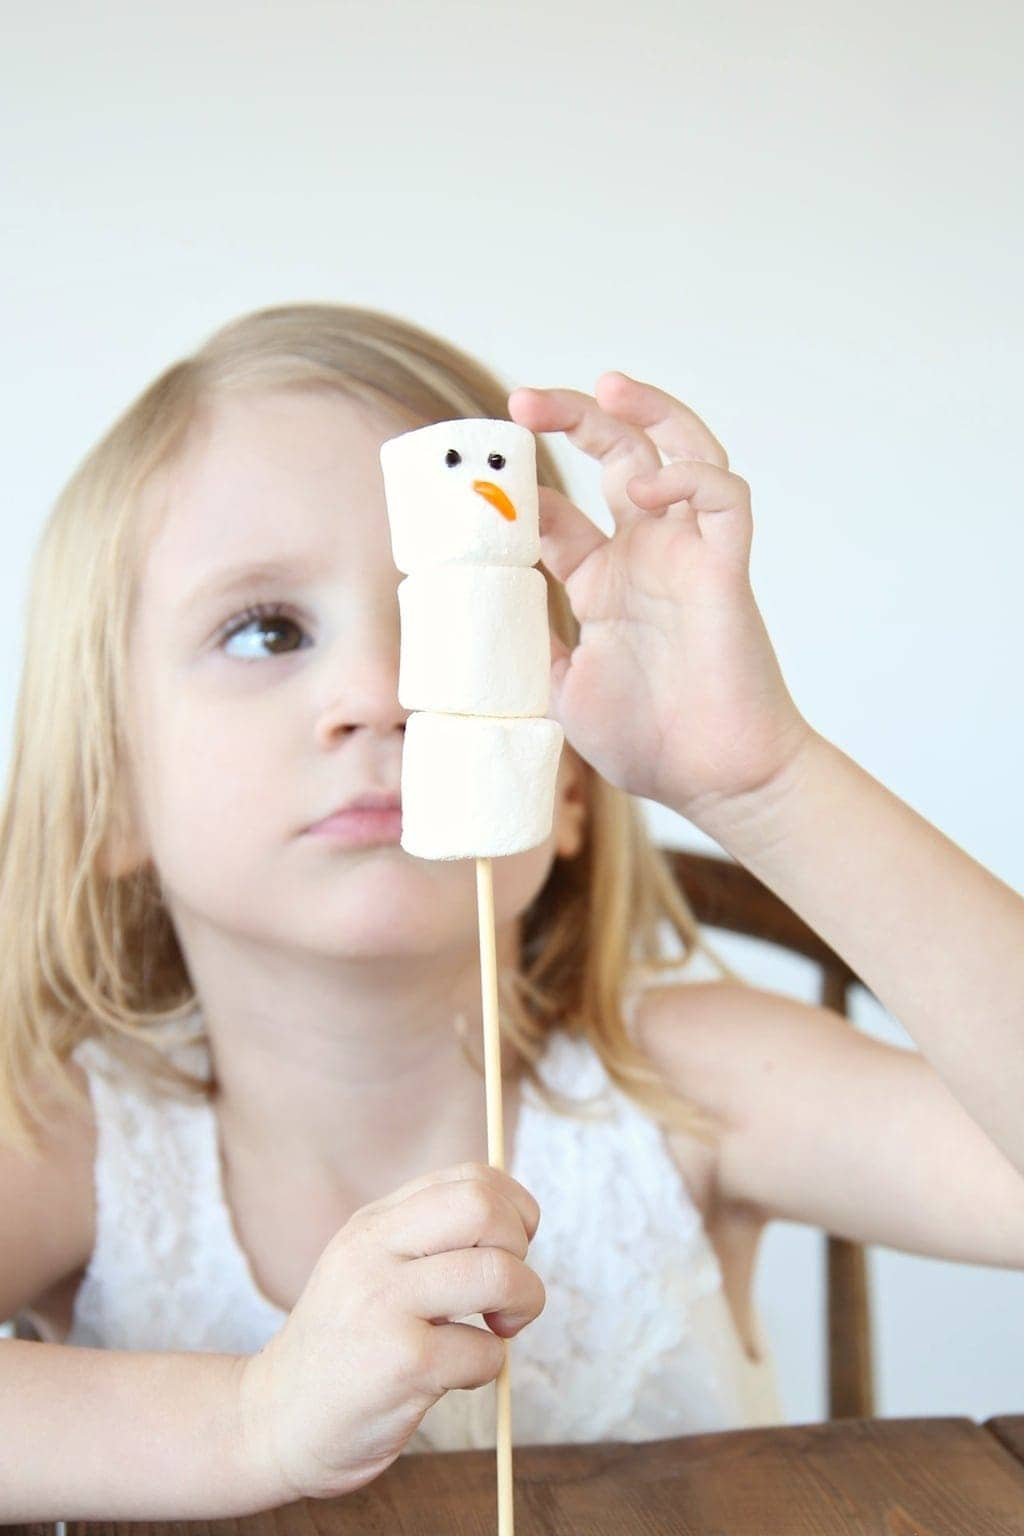 Do you want to build a snowman? Indoor activities for kids on snow days.